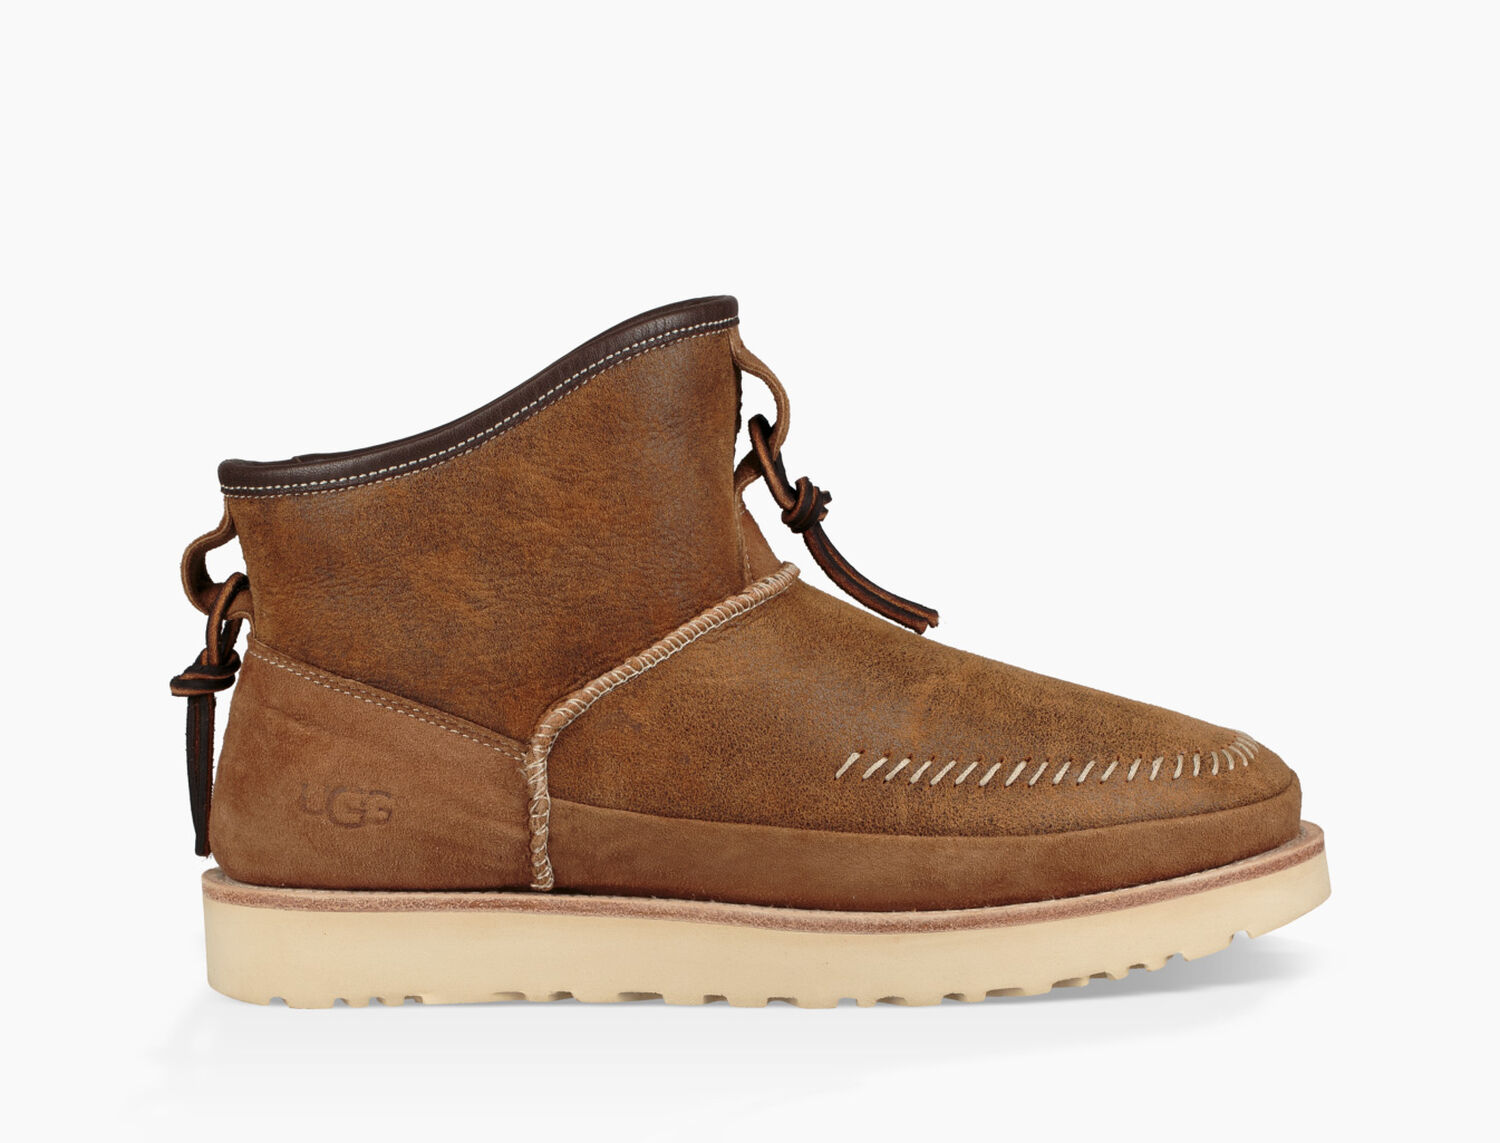 65190aed351 Men's Share this product Campfire Bomber Pull-On Boot